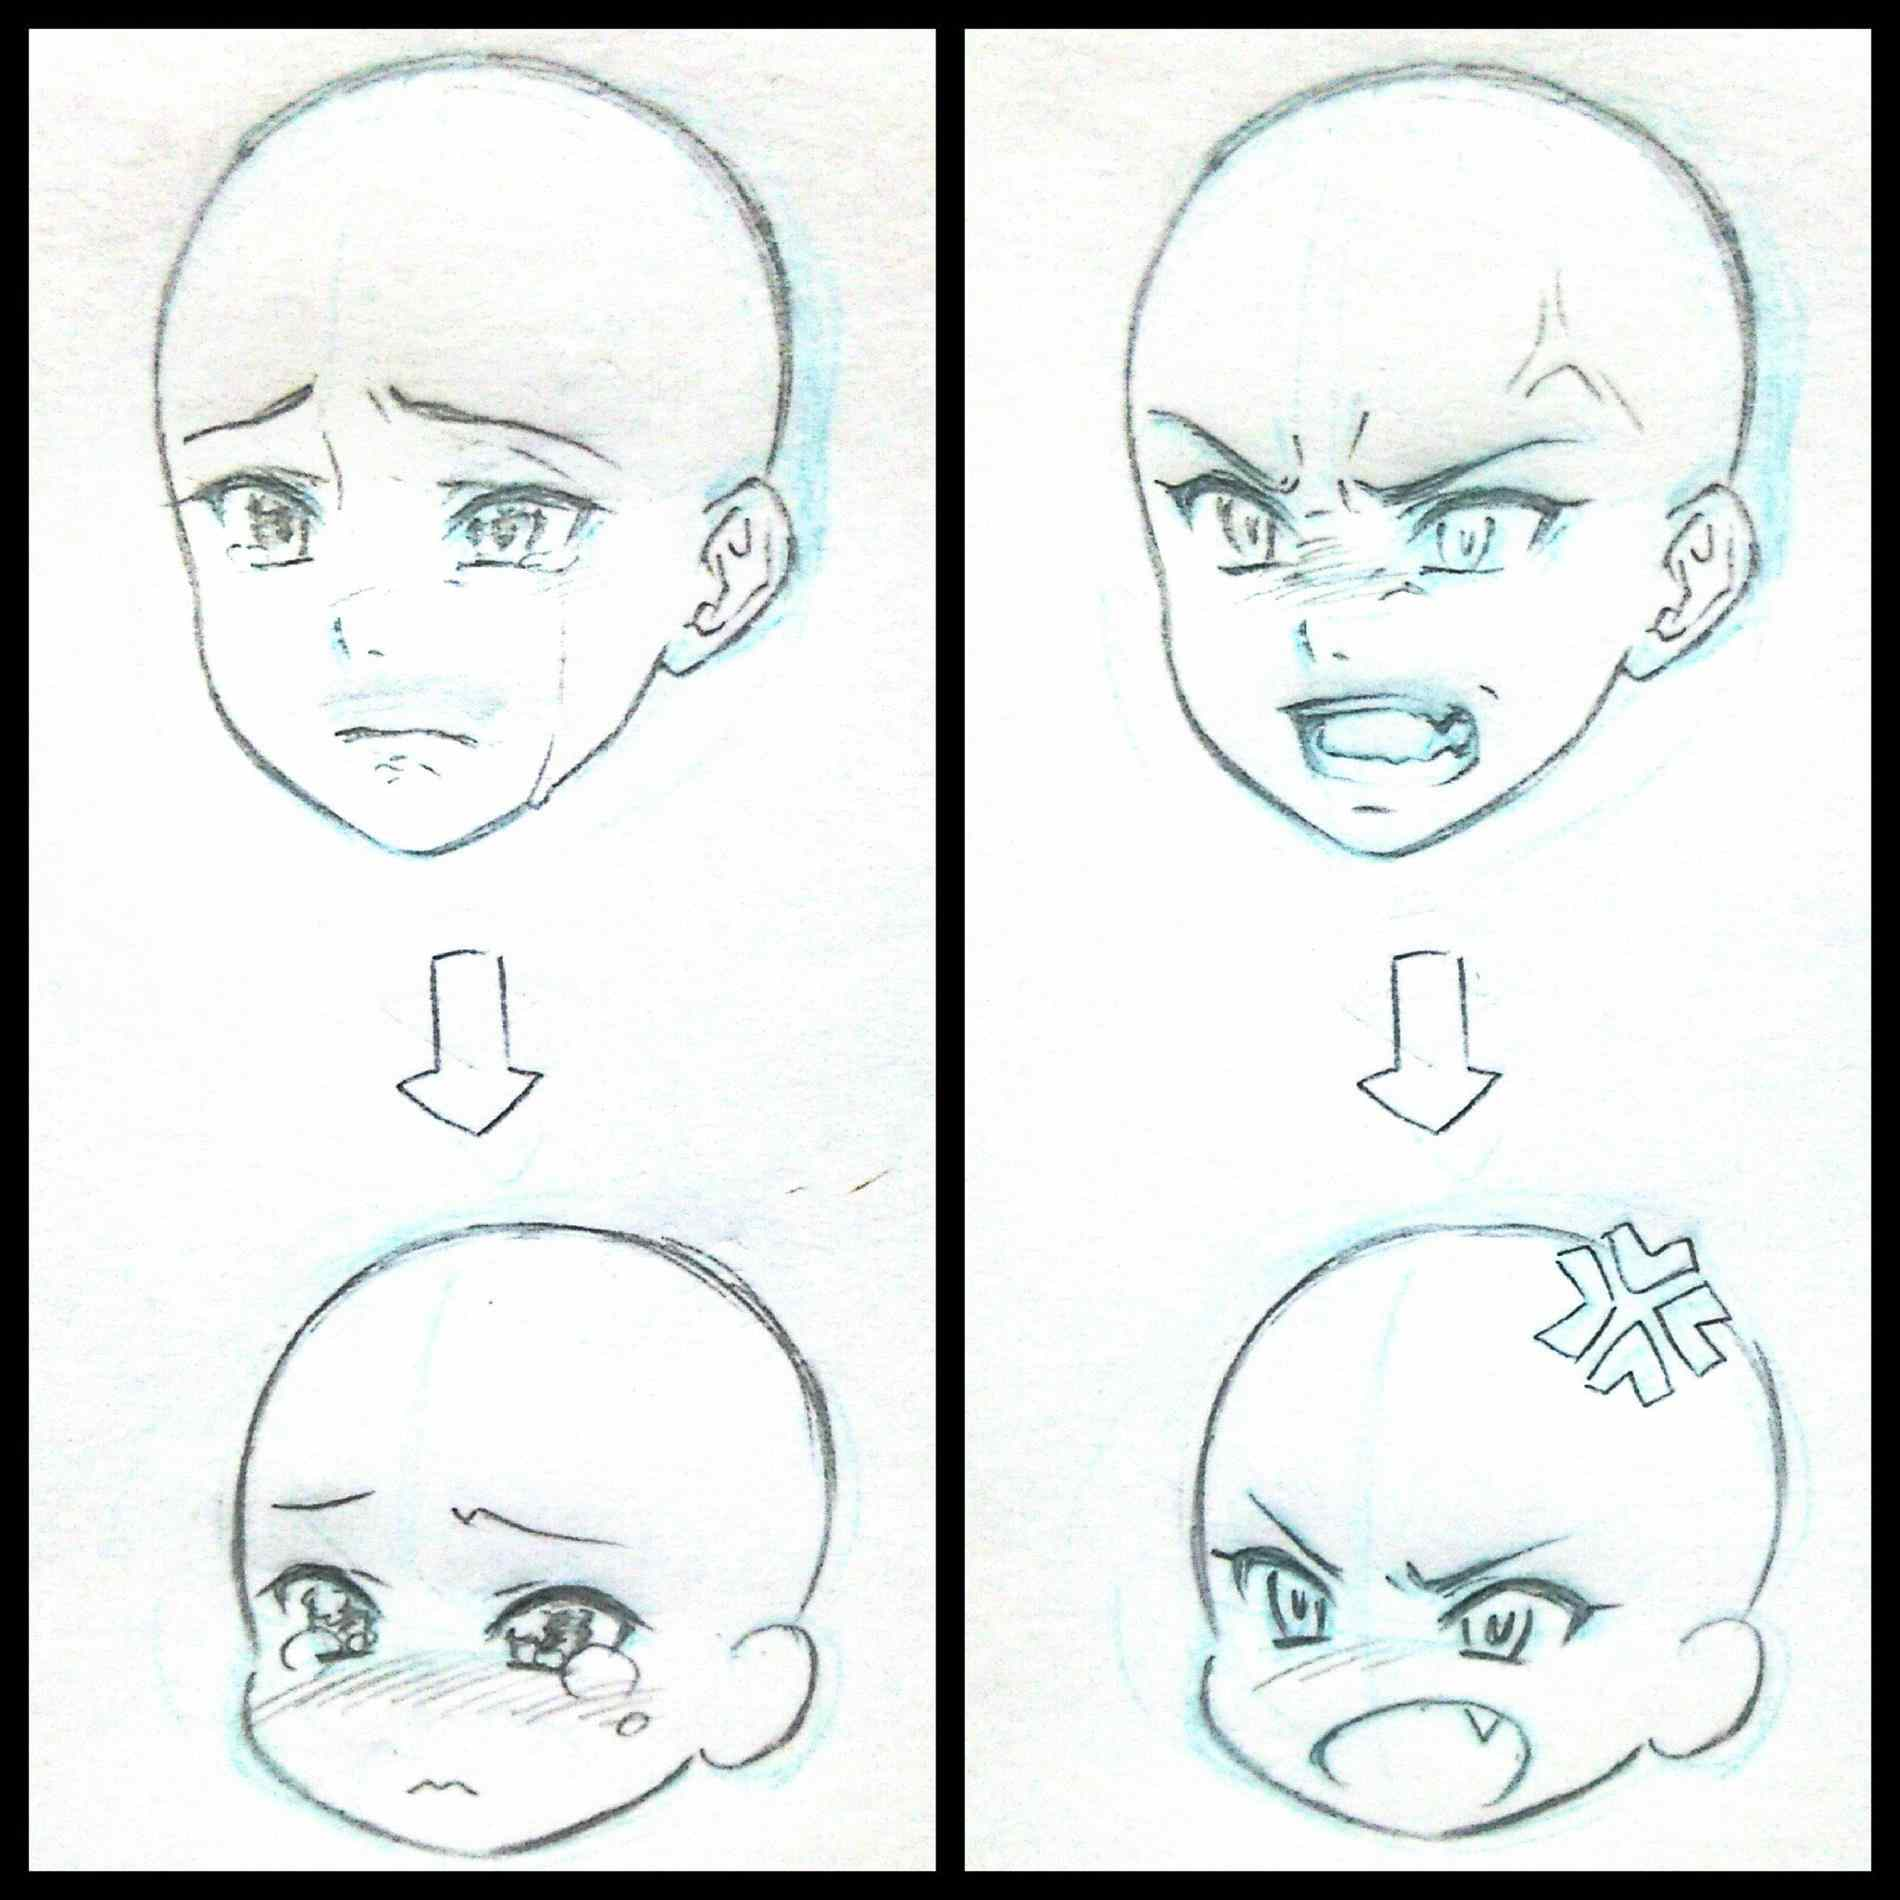 Step By Step Drawing Anime Faces At GetDrawings.com